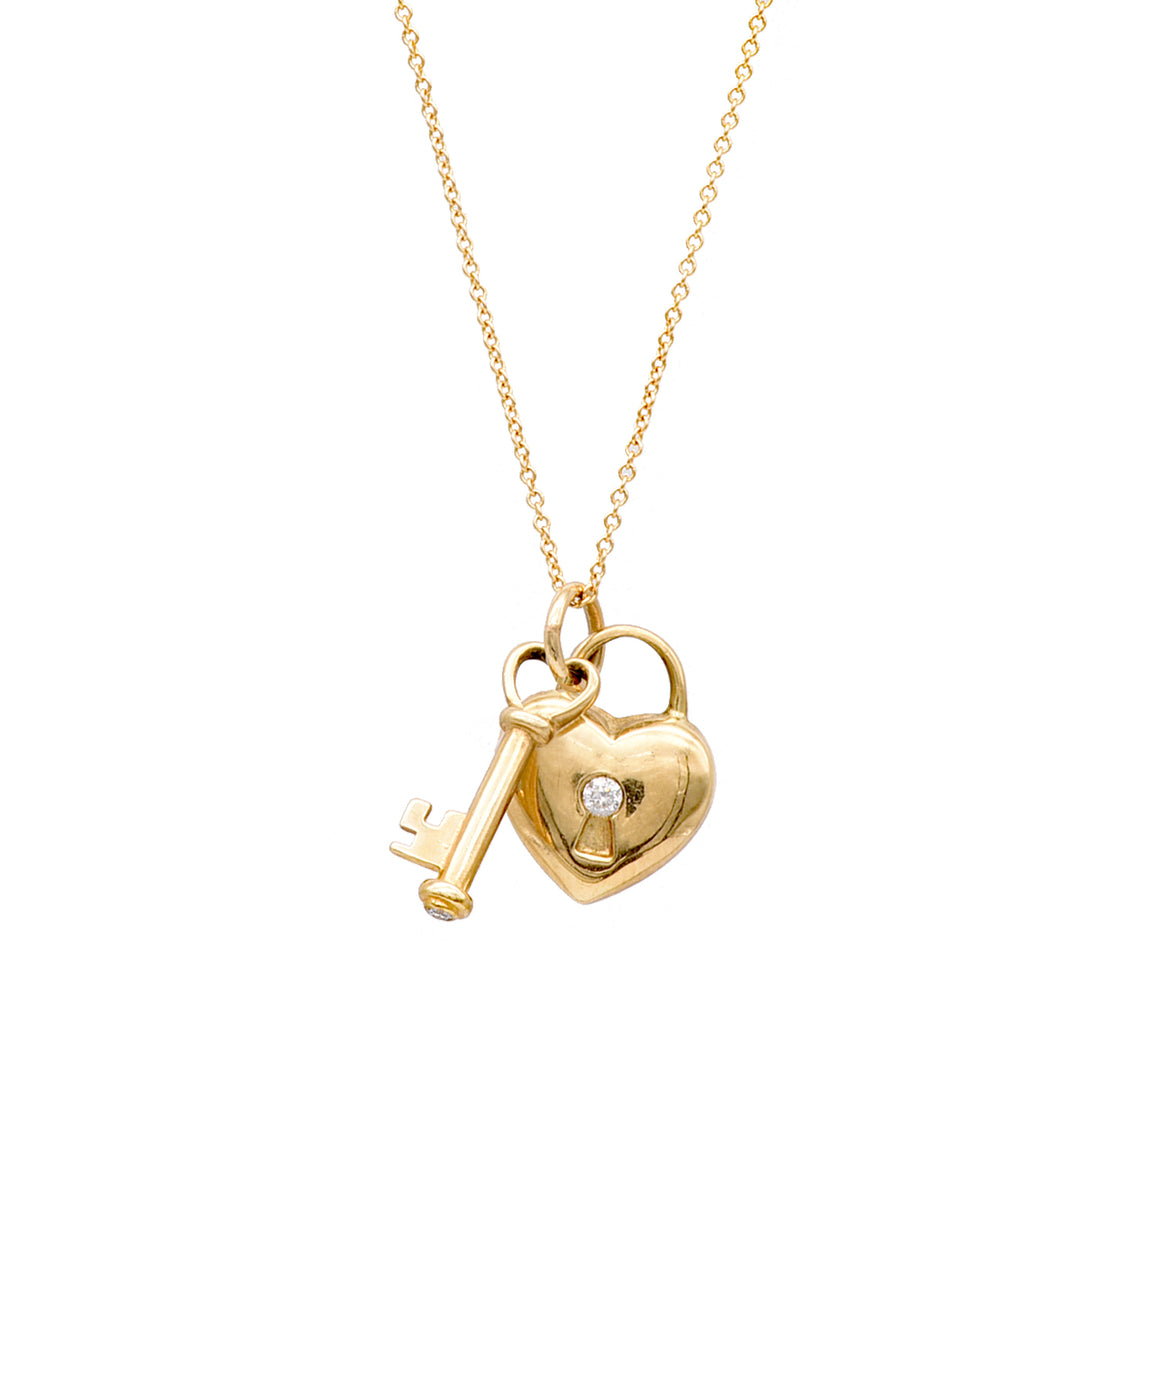 Vintage Key To My Heart Necklace - Lesley Ann Jewels